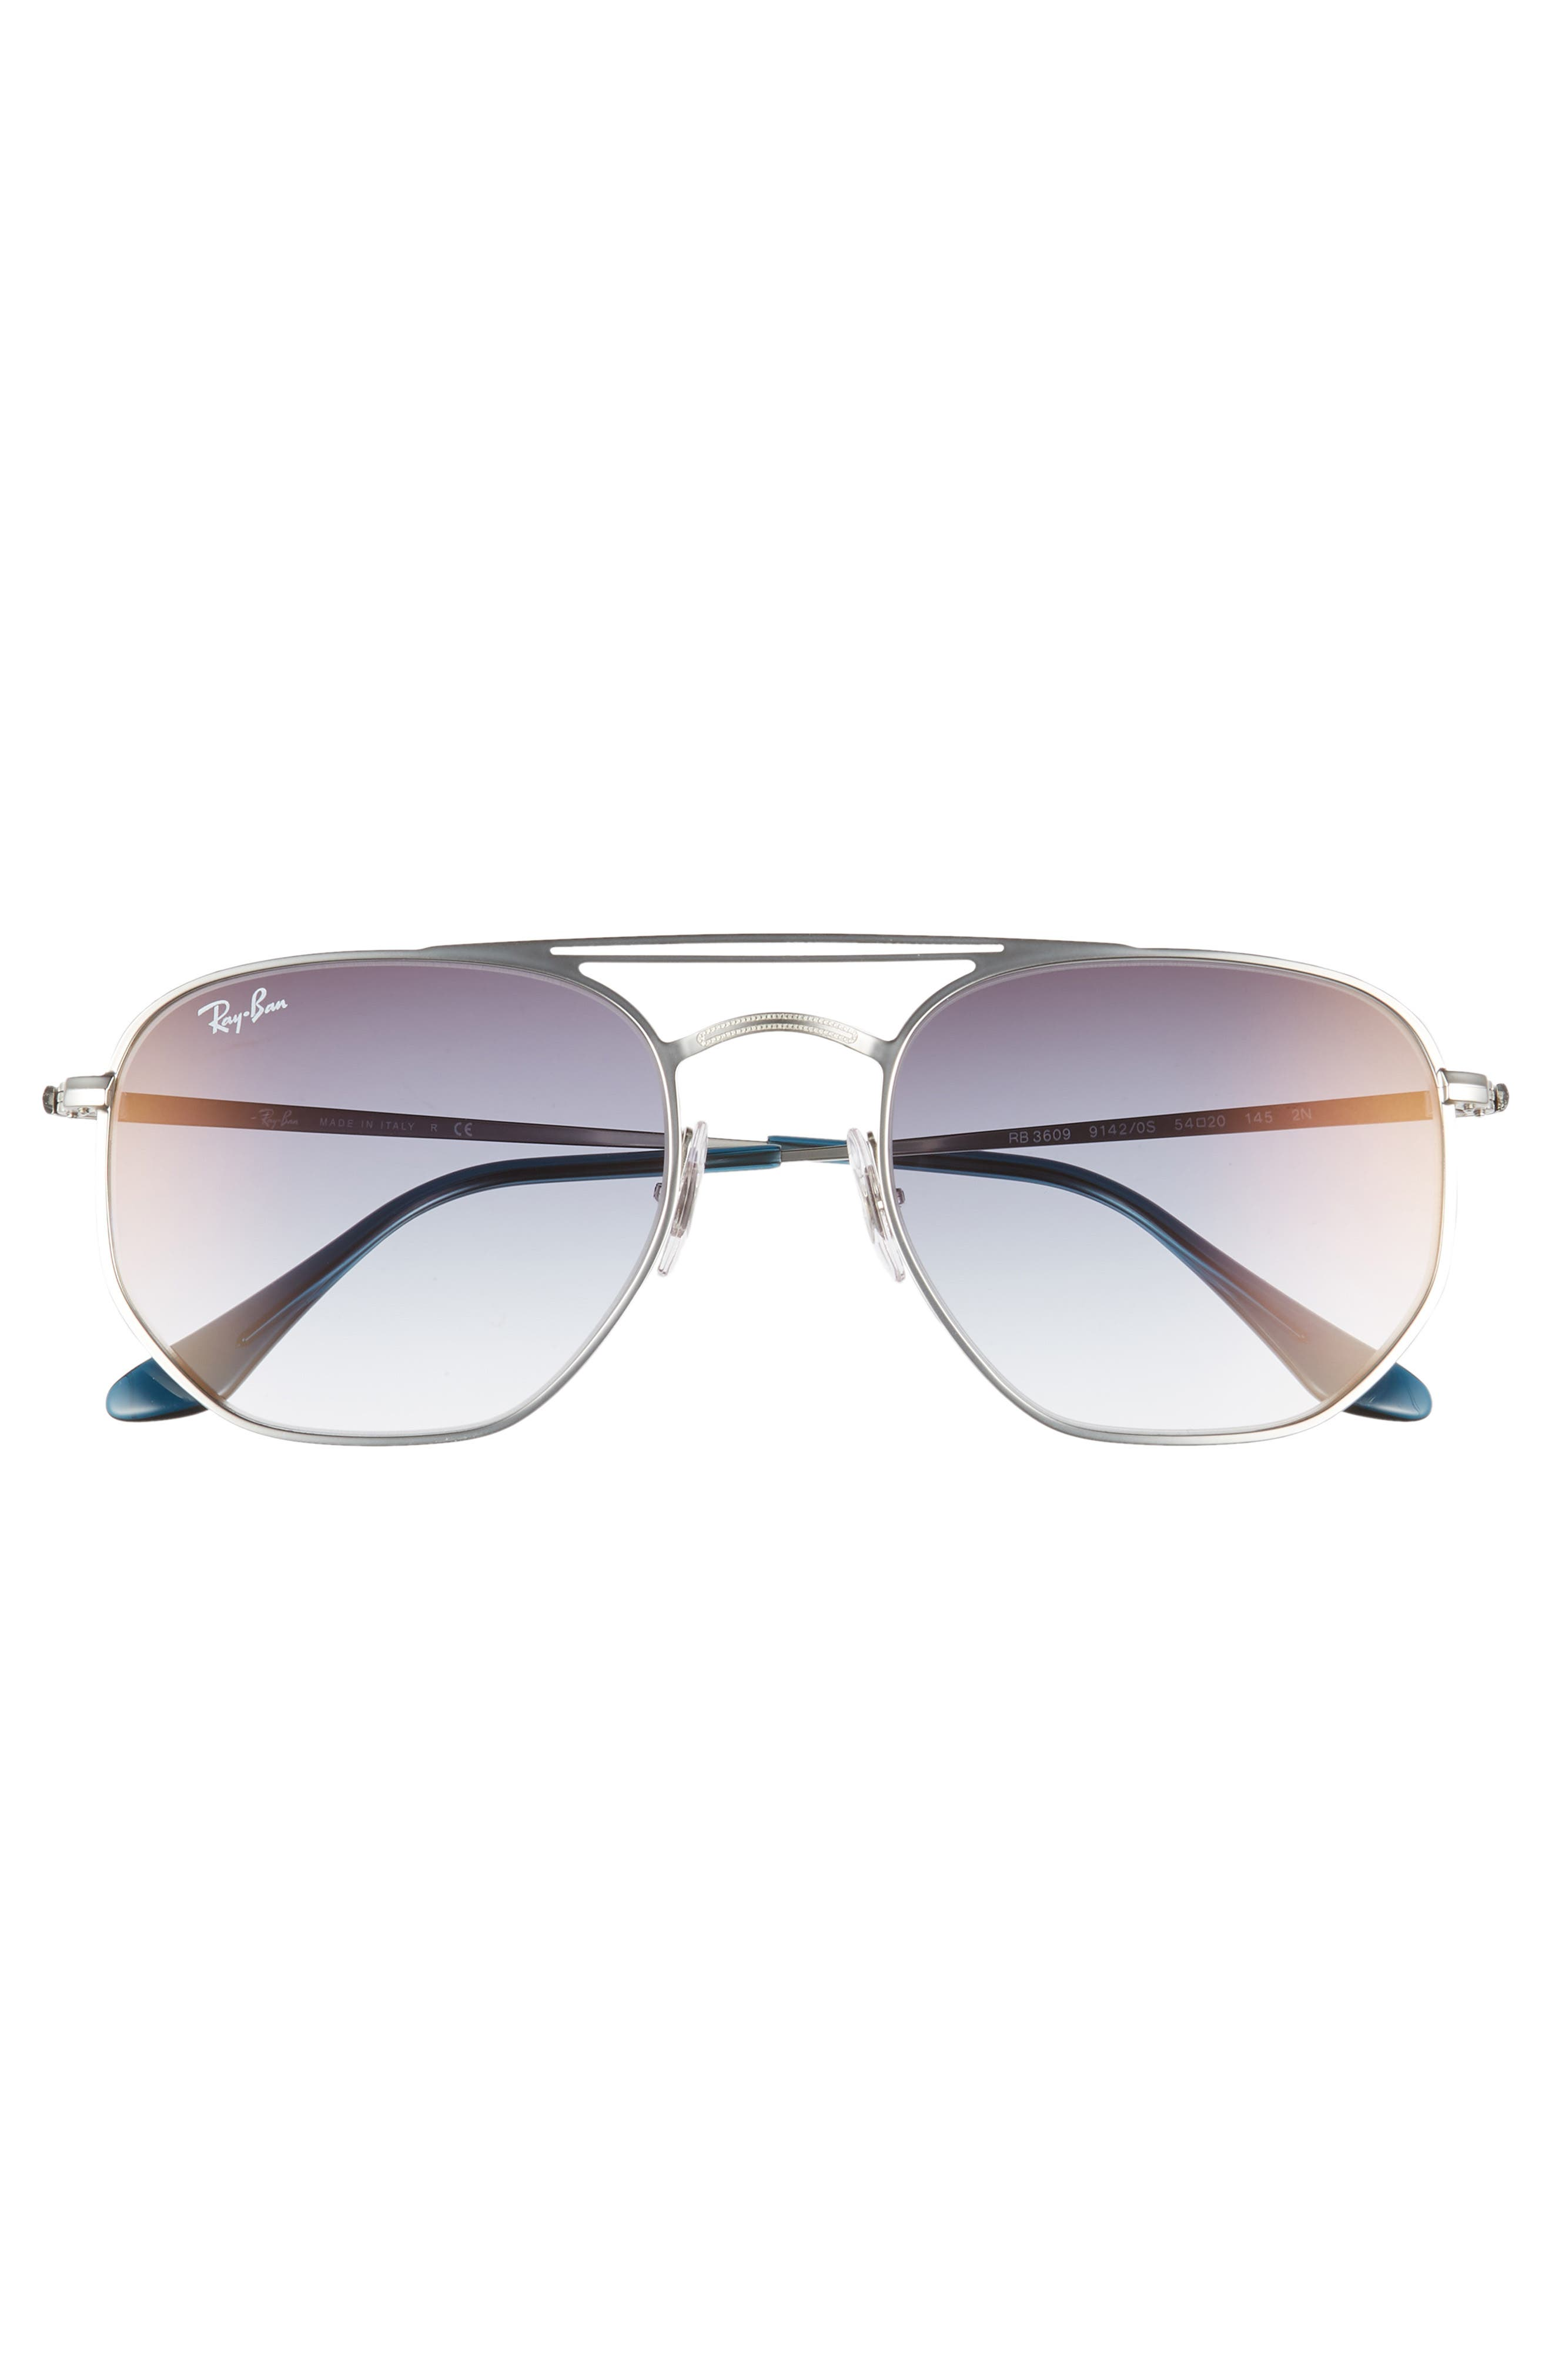 Navigator 54mm Double Bridge Sunglasses,                             Alternate thumbnail 2, color,                             TRANSPARENT BLUE